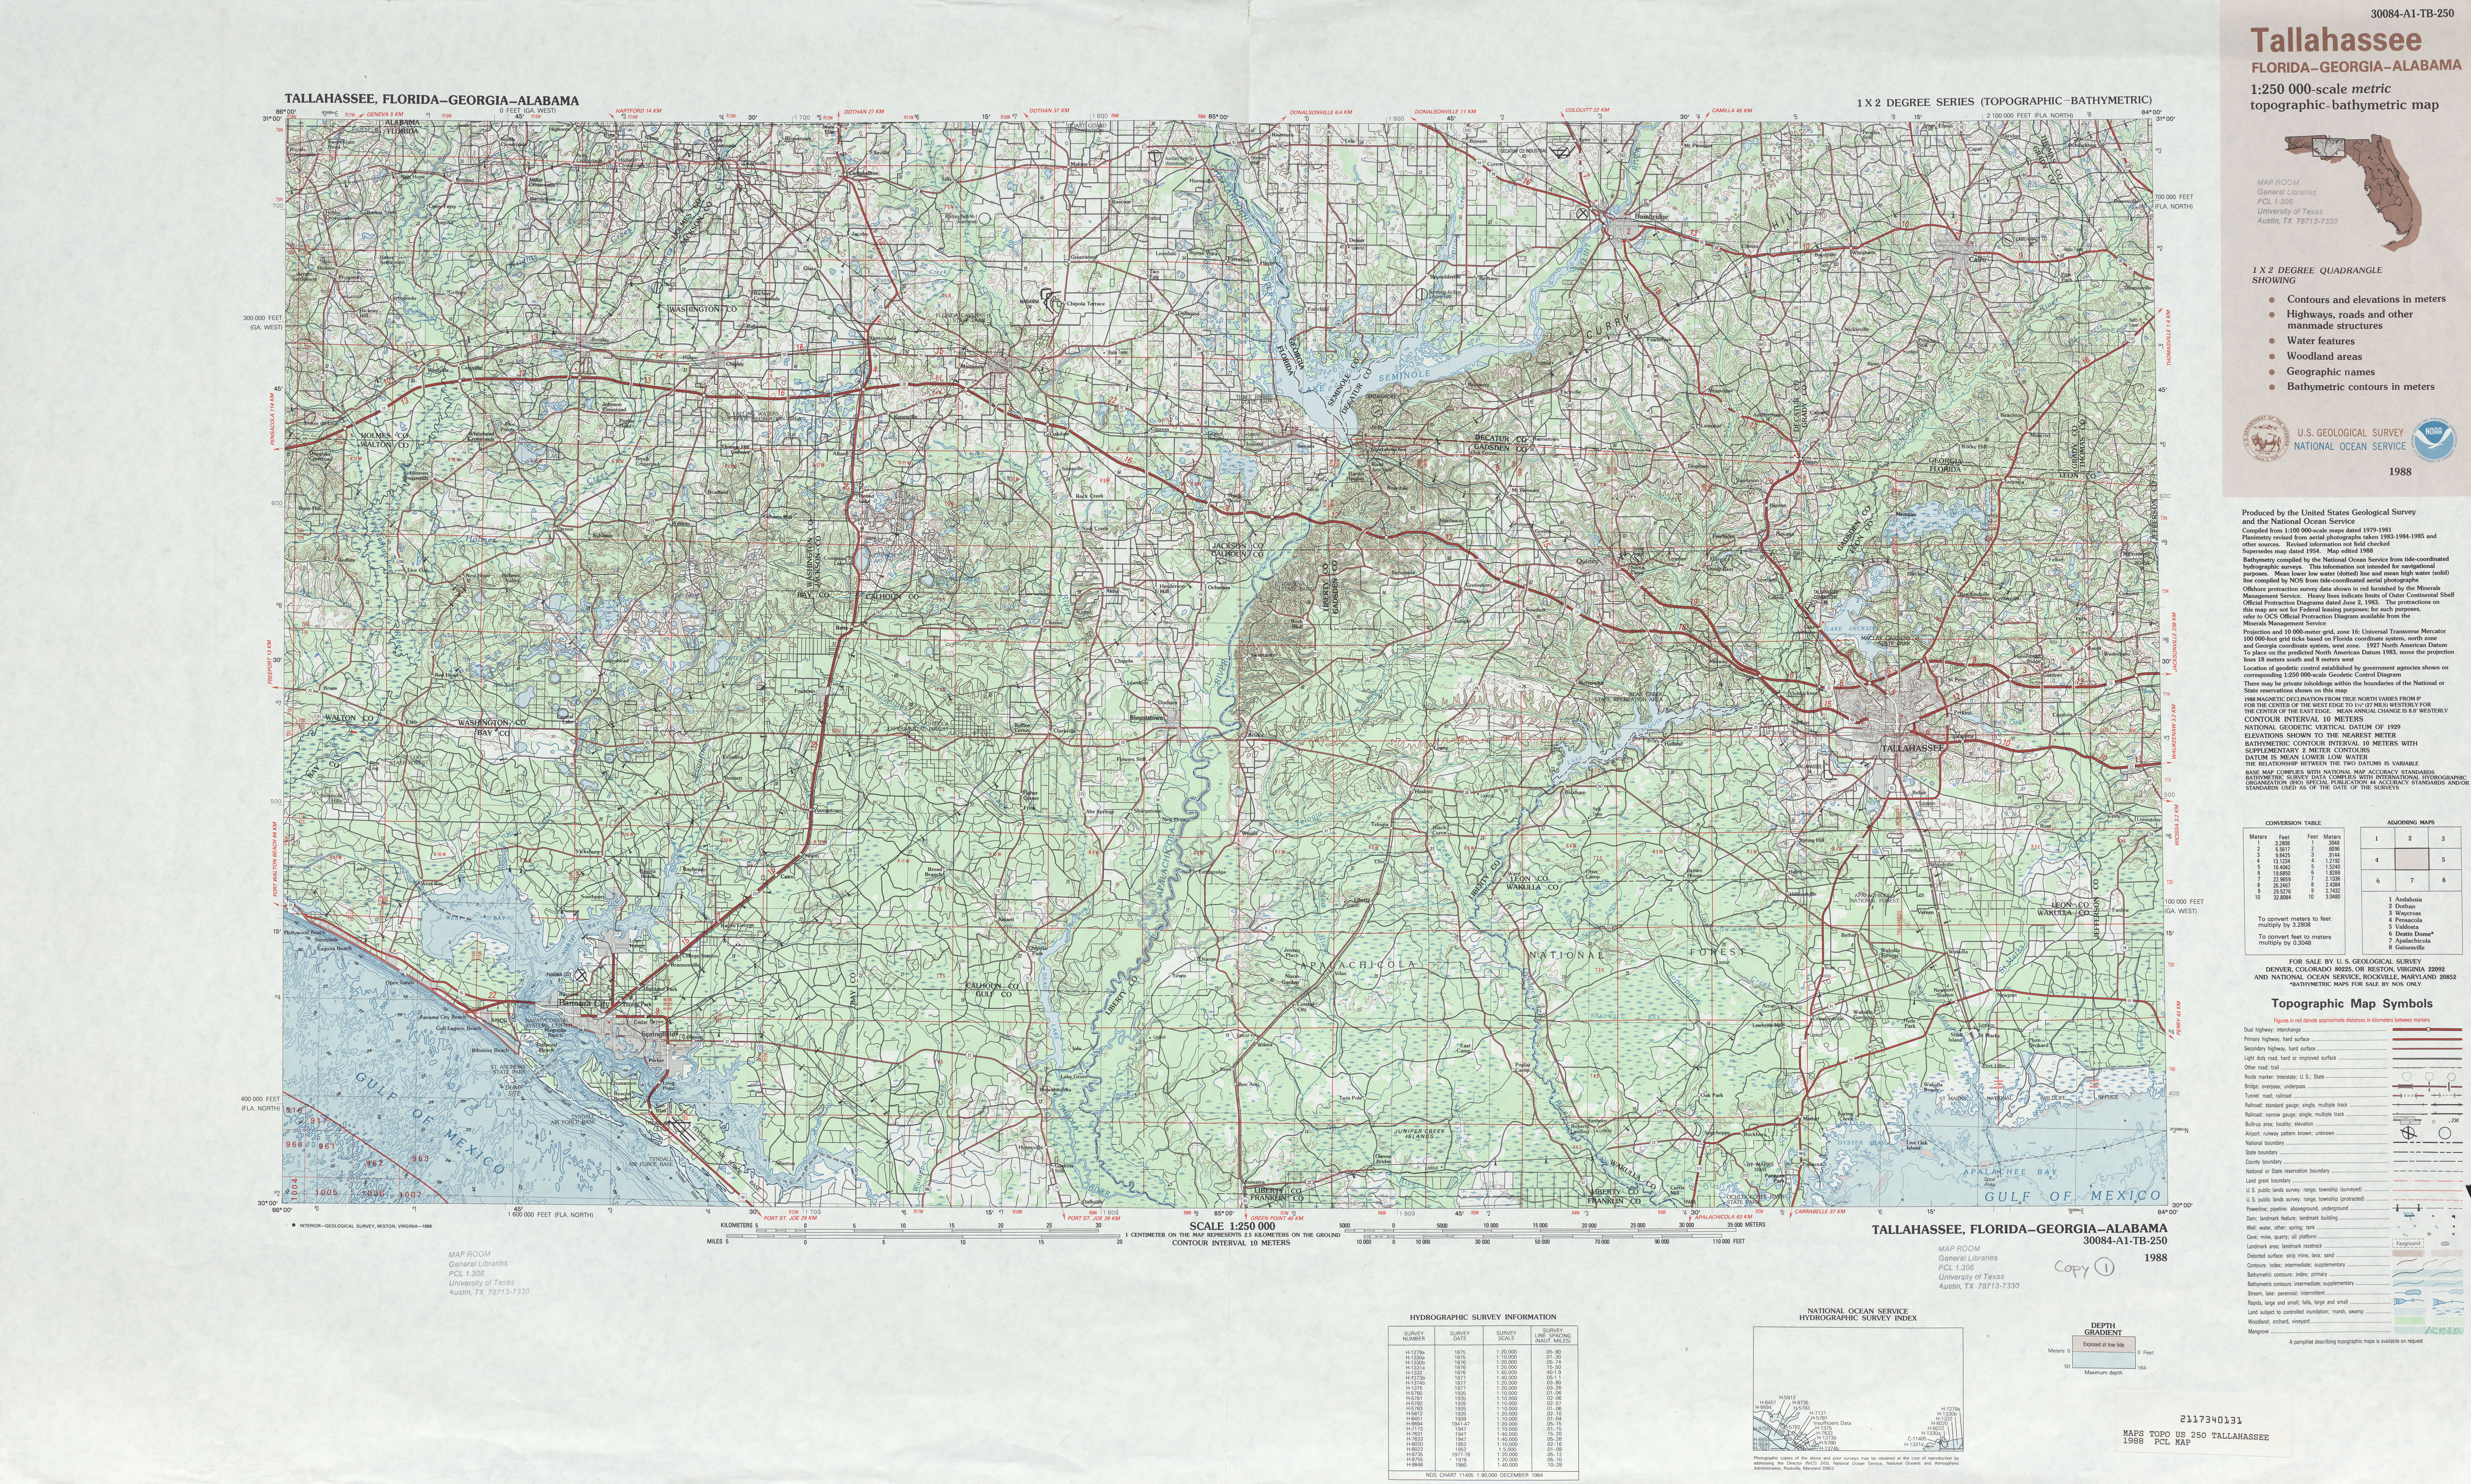 Tallahassee Topographic-Bathymetric Map Sheet, United States 1988